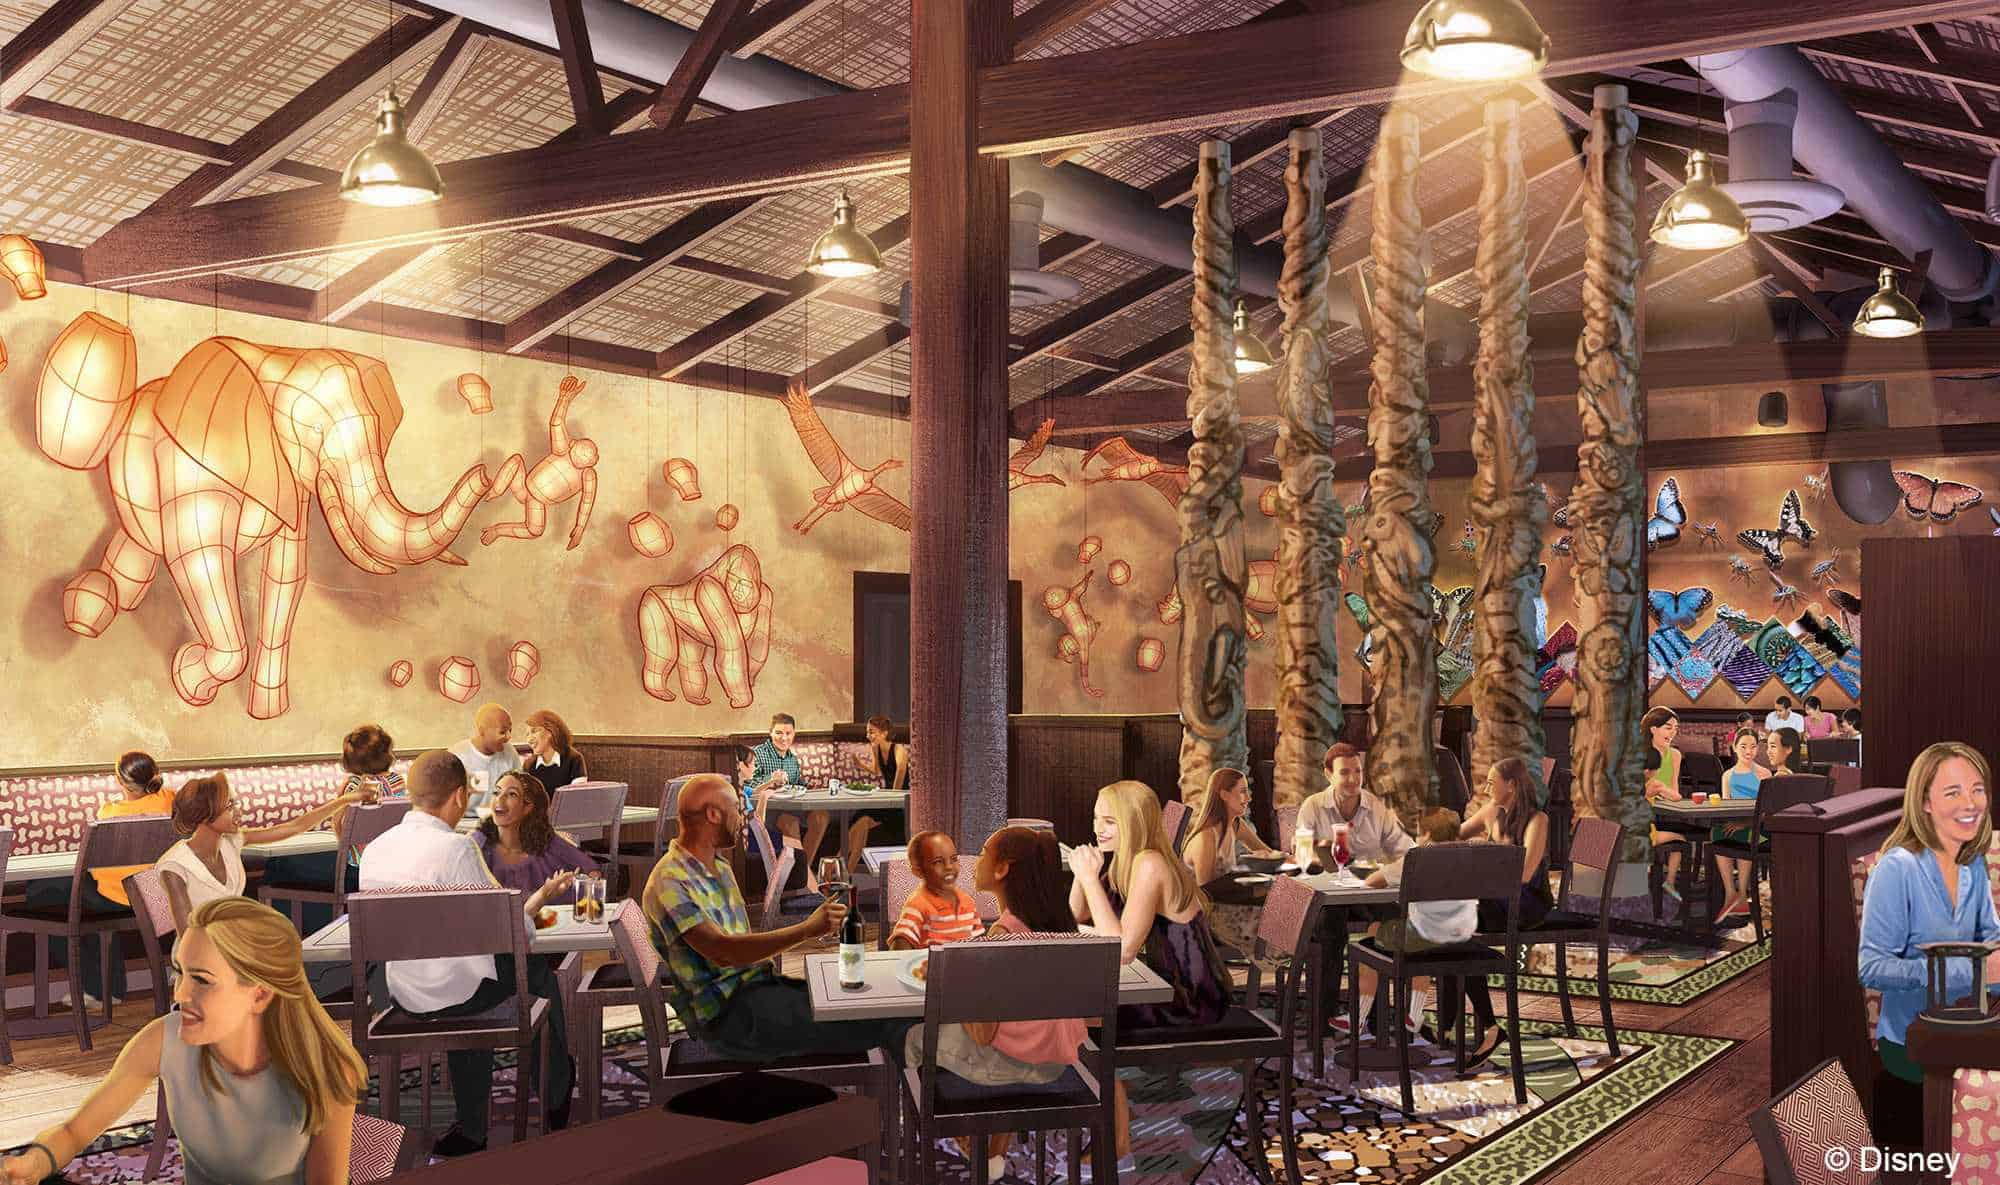 These new restaurants are opening at Disney World in 2016 #disneydining #disneyworld